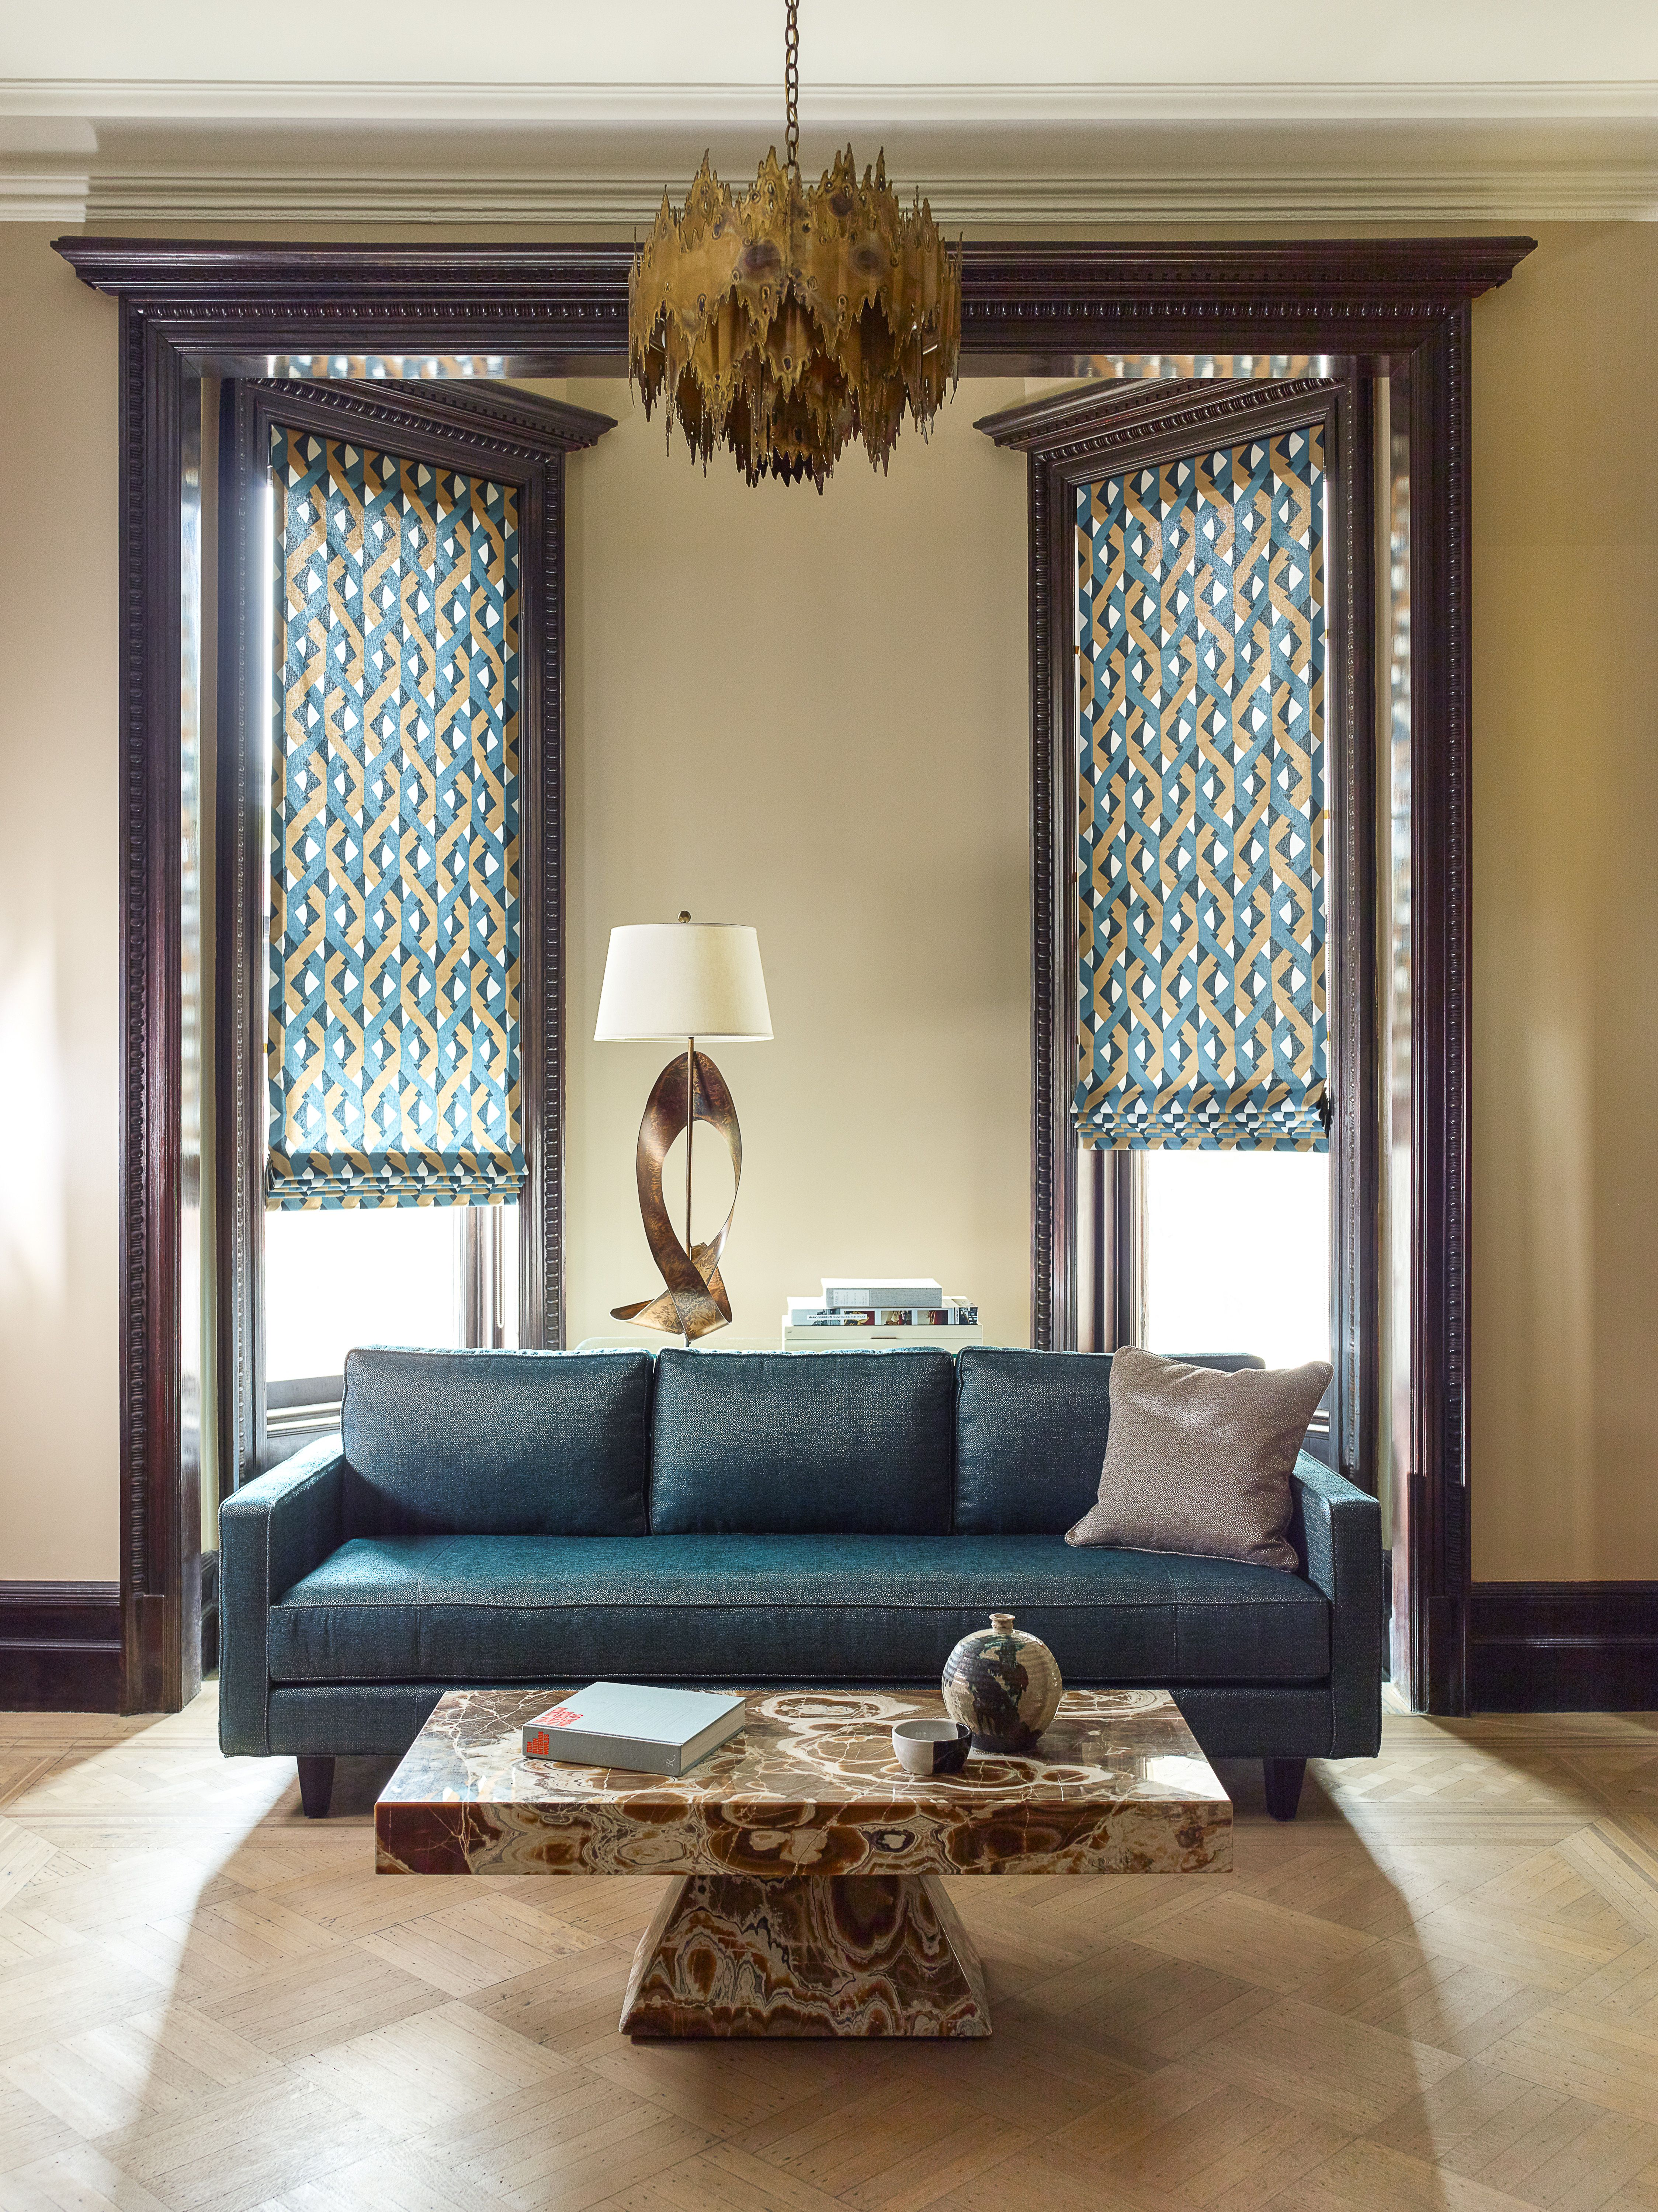 Inside mount window treatments - Try Inside Mount Flat Roman Shades In A Bold Print To Complement Craftsman Style Woodwork